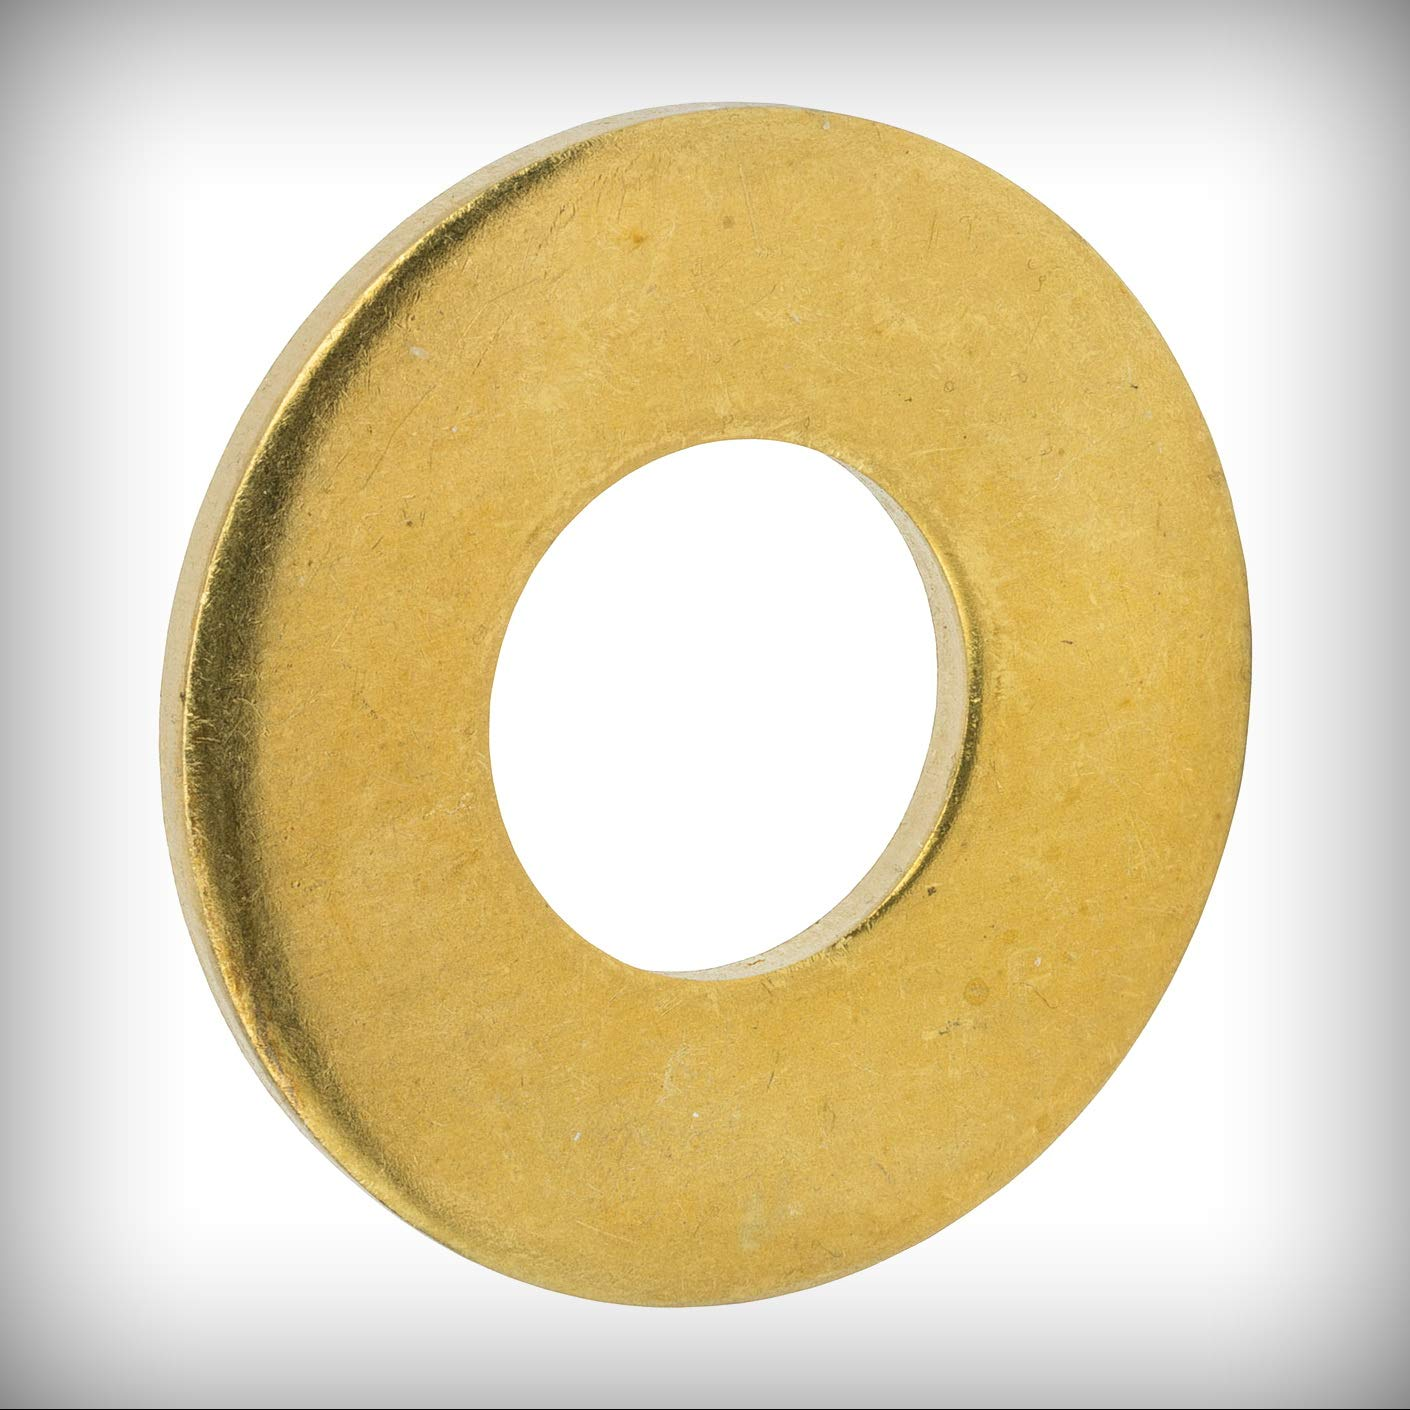 New Lot of 500 Pcs #12 Flat Solid Brass Flat Washers Commercial Standard Grade 360 Set #Lig-0982NG Warranity by Pr-Mch